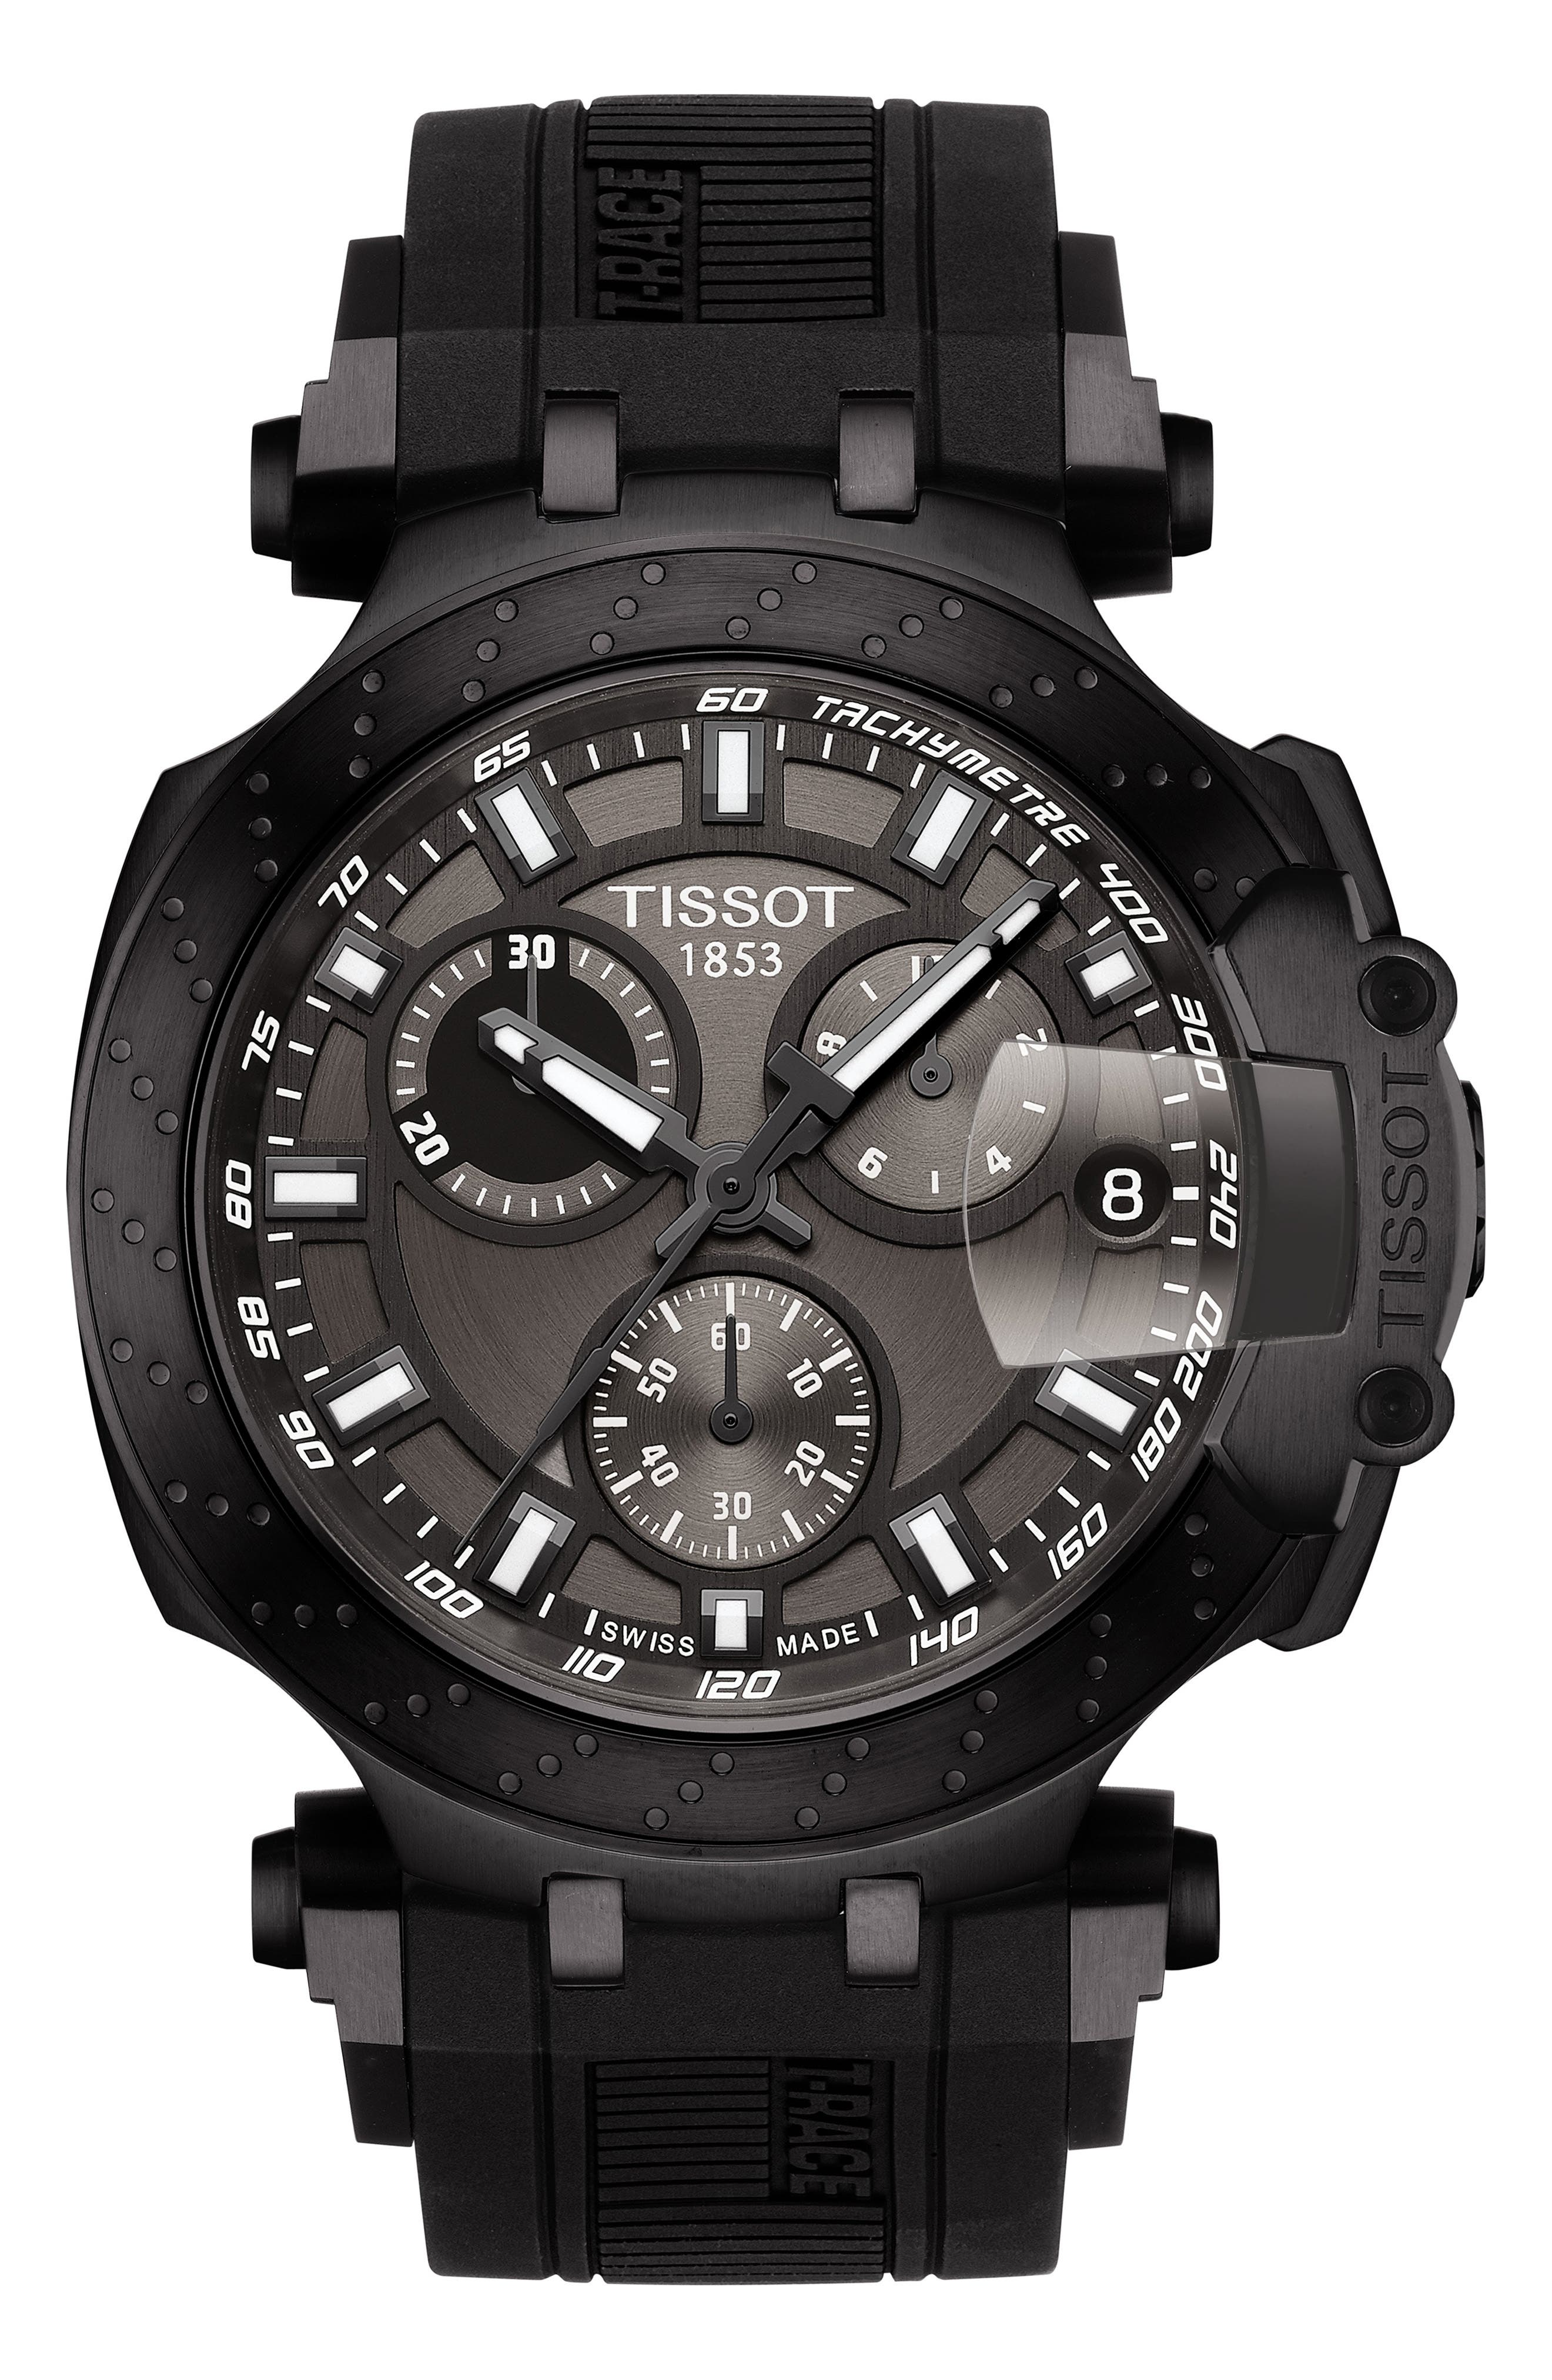 TISSOT,                             T-Race Chronograph Silicone Strap Watch, 48mm,                             Main thumbnail 1, color,                             BLACK/ ANTHRACITE/ GREY